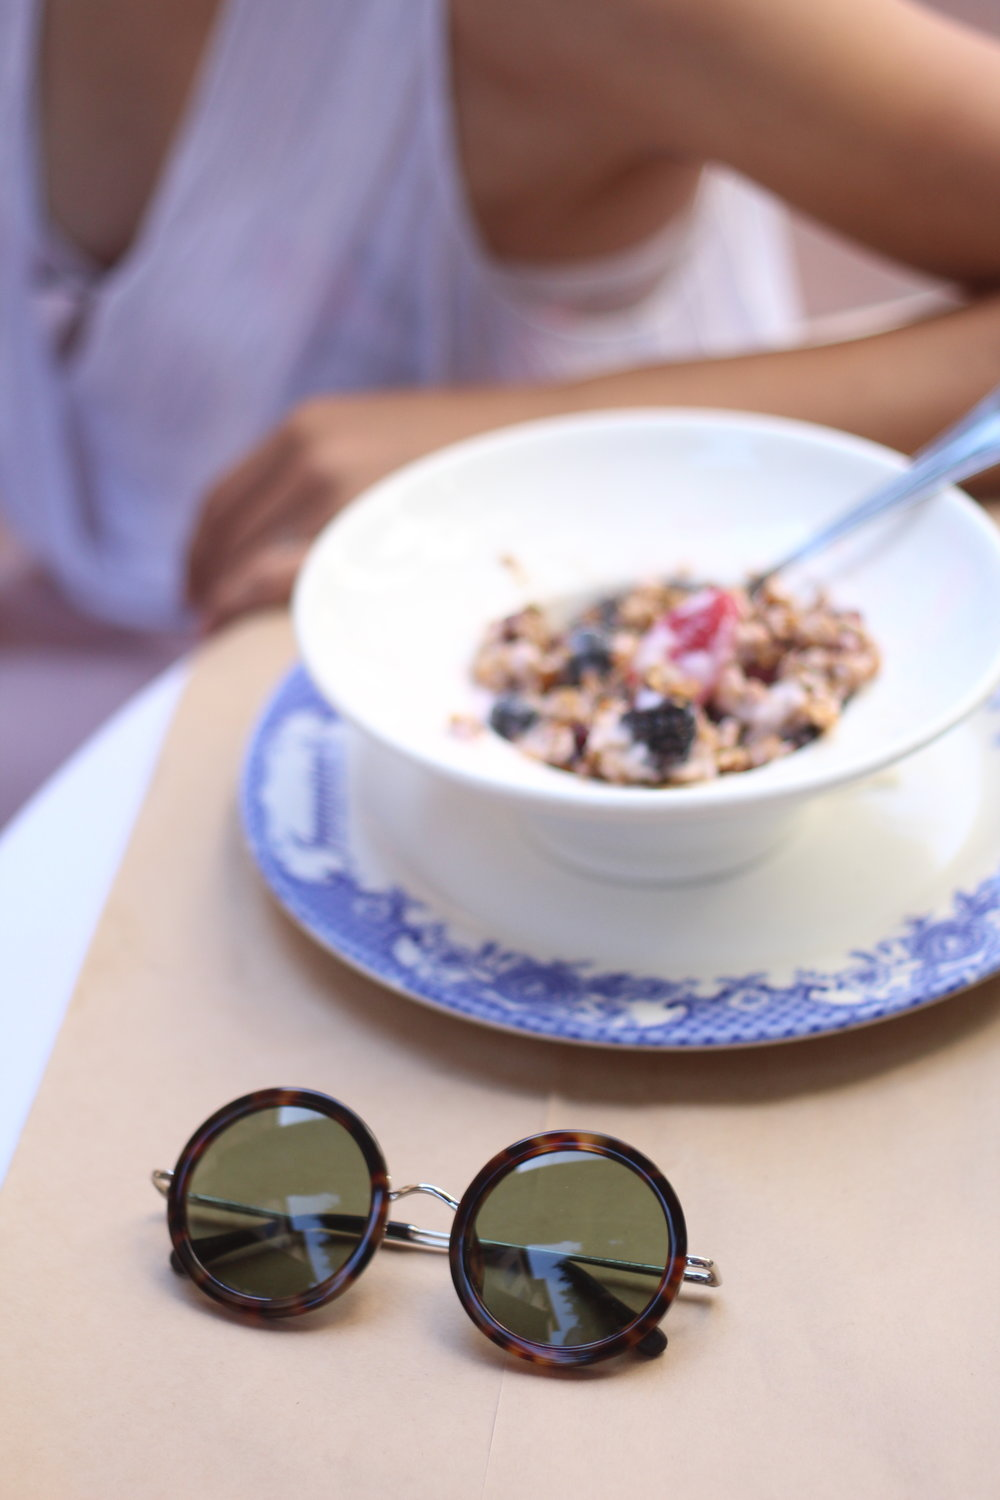 Linen granola and sunnies